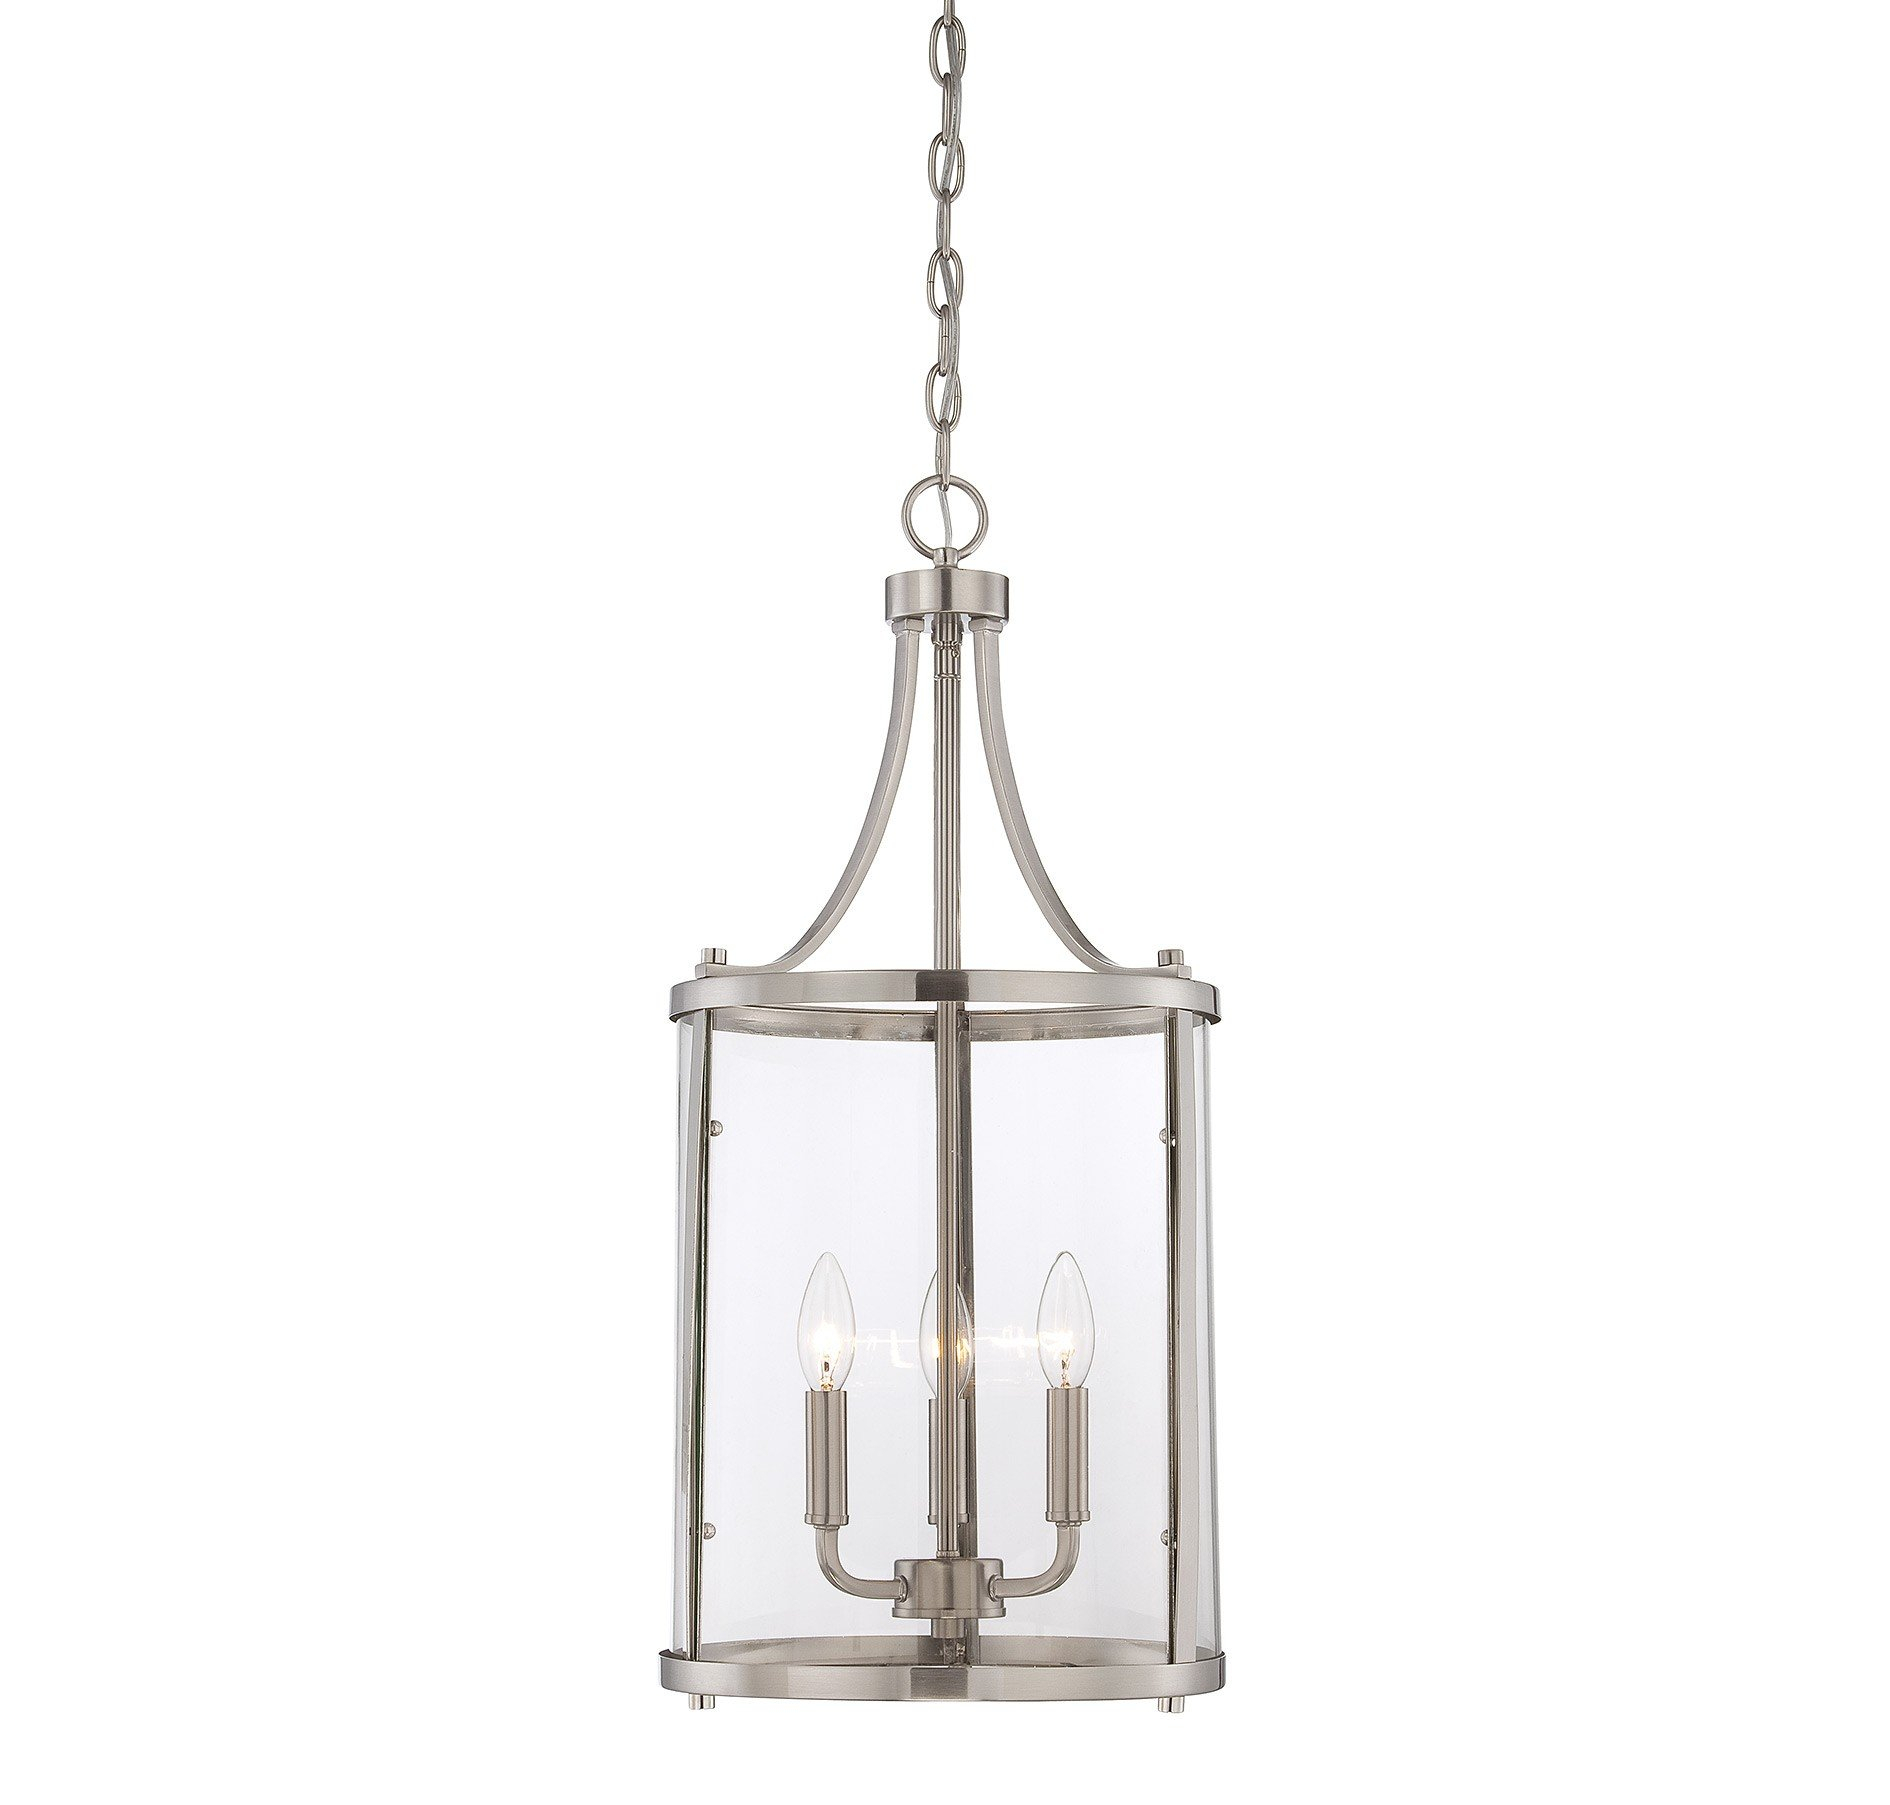 3 Light Lantern Cylinder Pendant With 3 Light Lantern Cylinder Pendants (View 6 of 30)